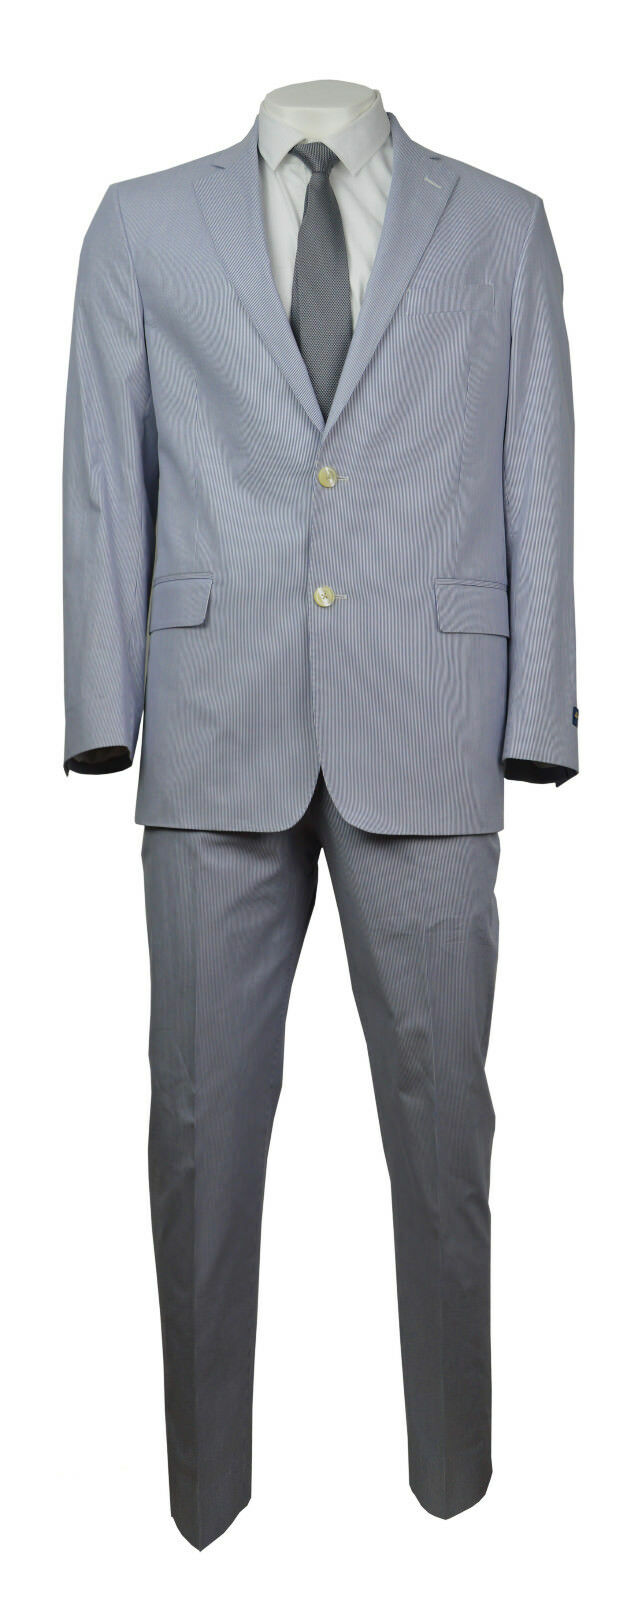 Brooks Bredhers Mens bluee White Striped Regent Fit Two Piece Suit 43R 37W 0763-1